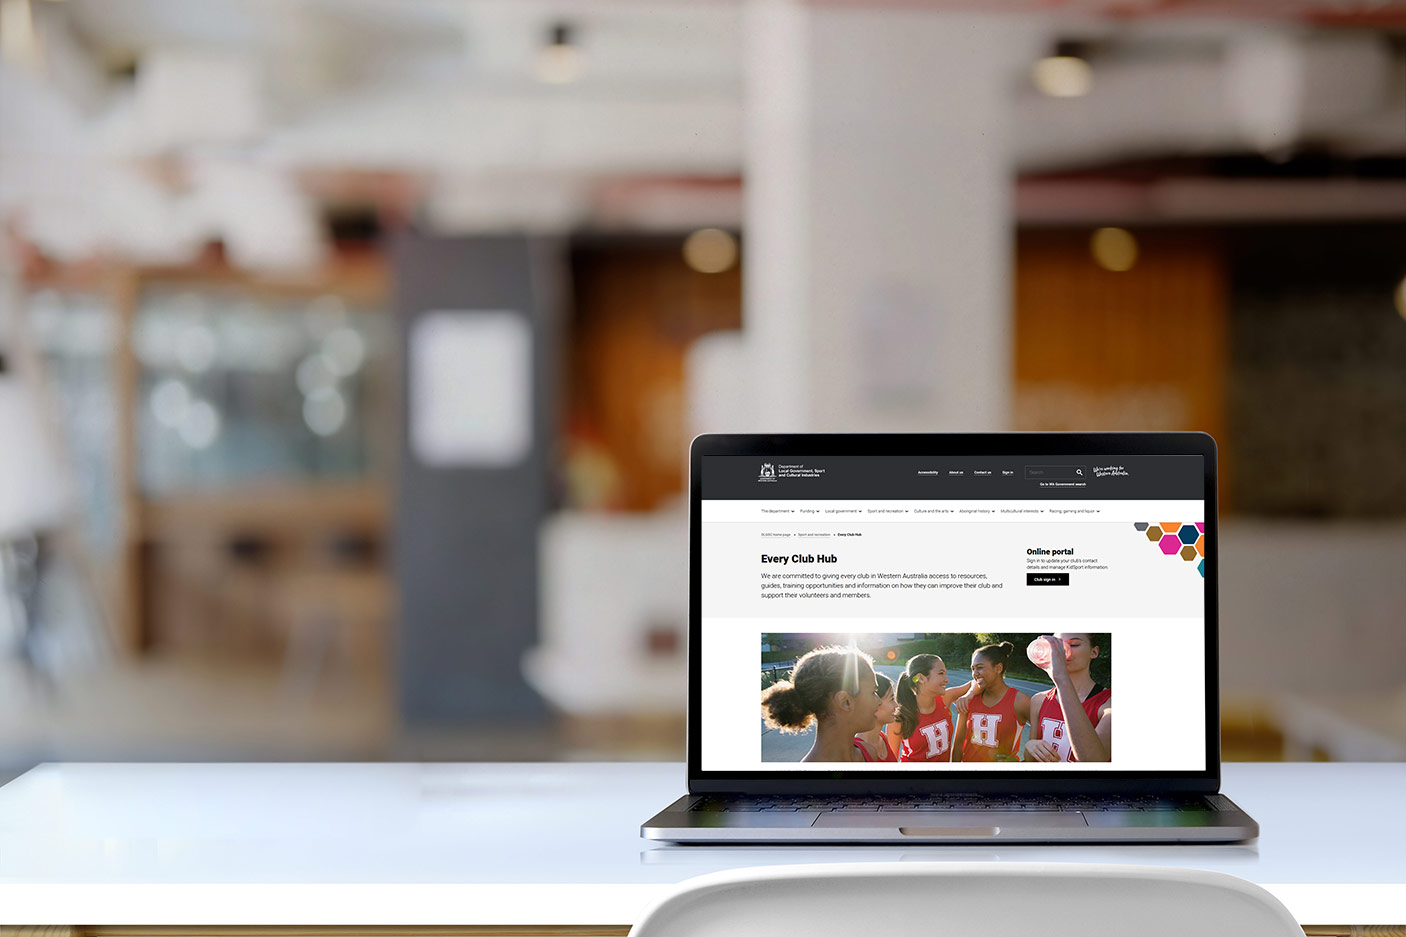 Image of the Every Club Hub displayed on a laptop